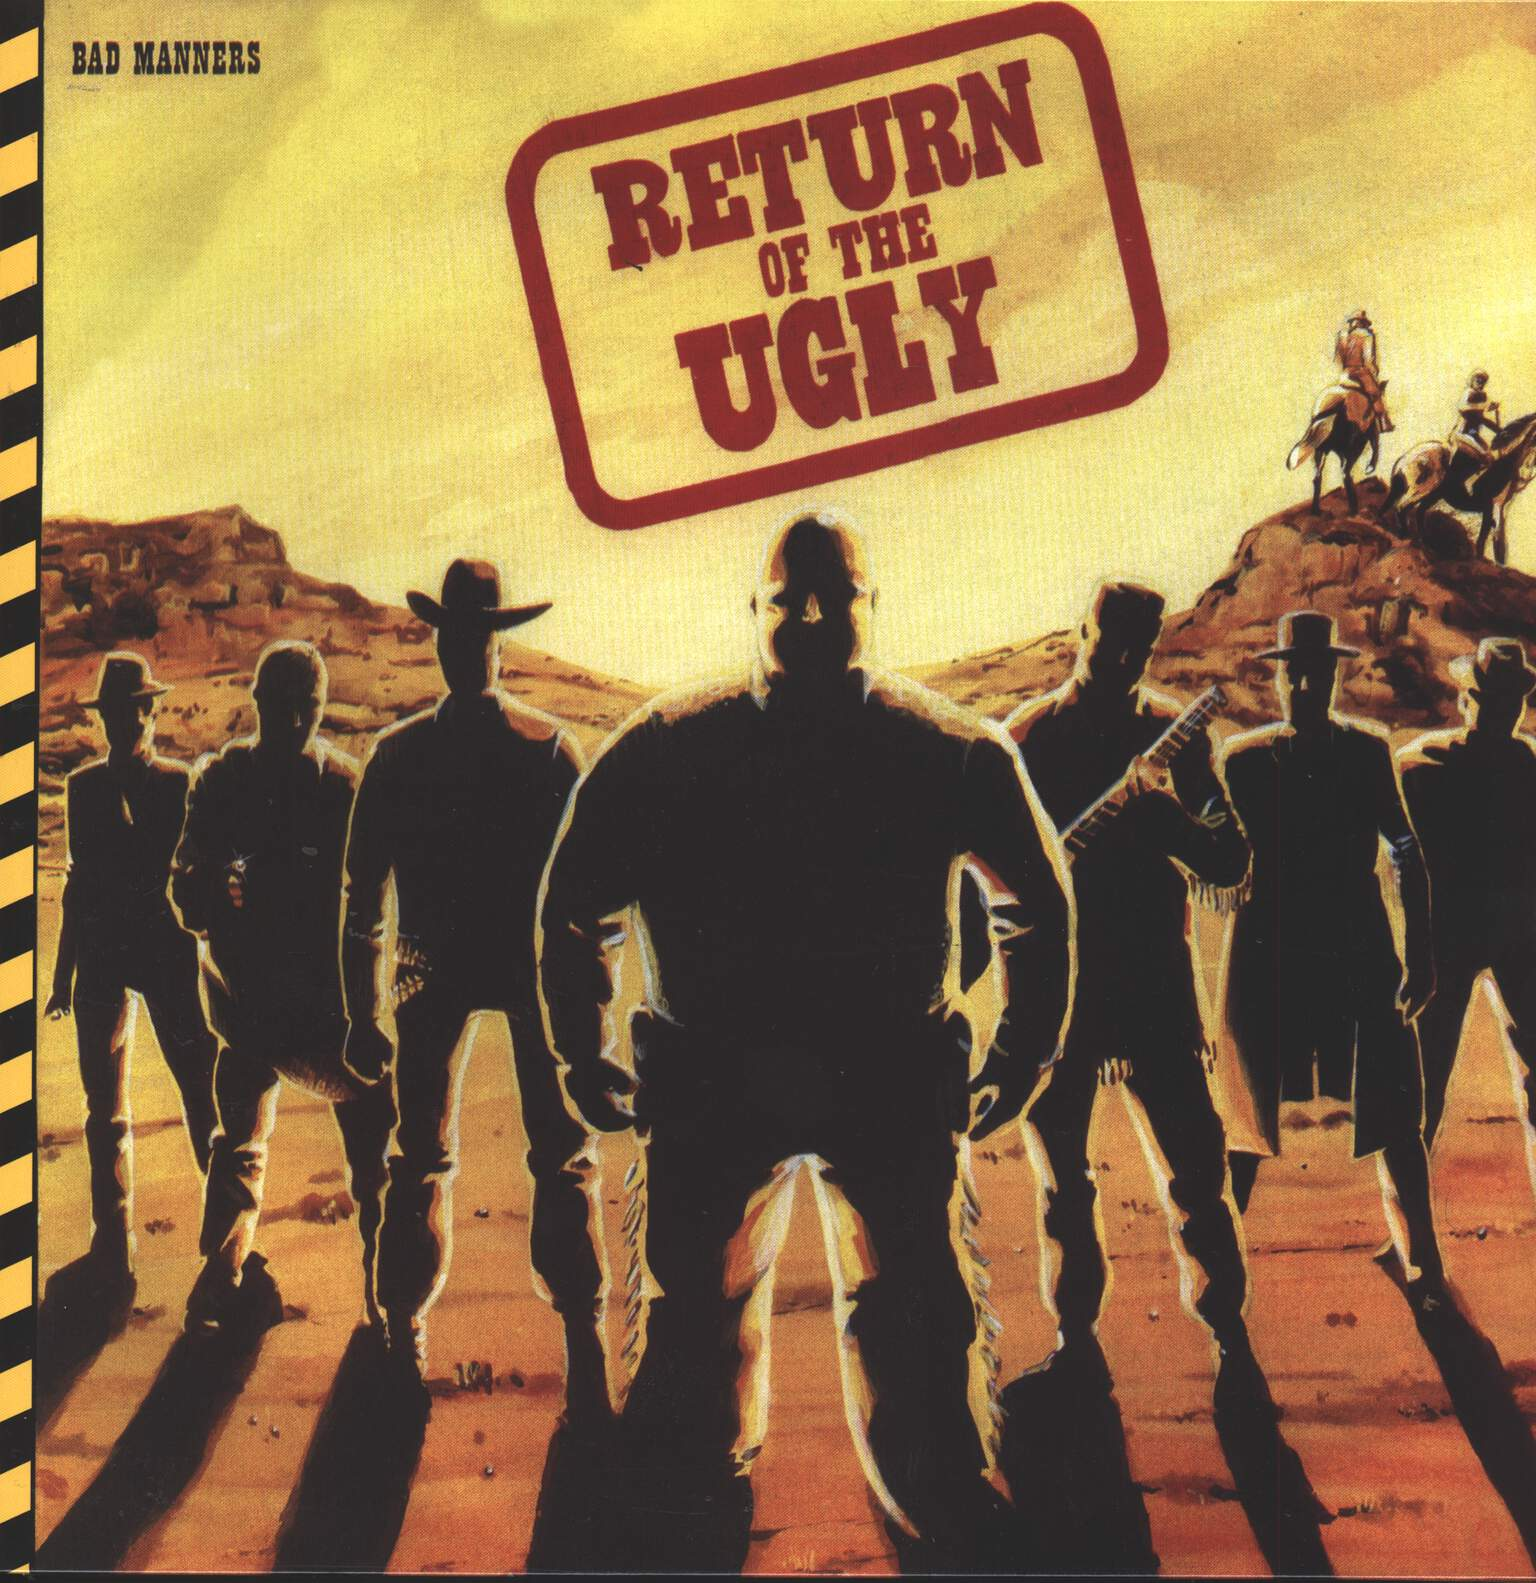 Bad Manners: Return Of The Ugly, 1×LP (Vinyl)